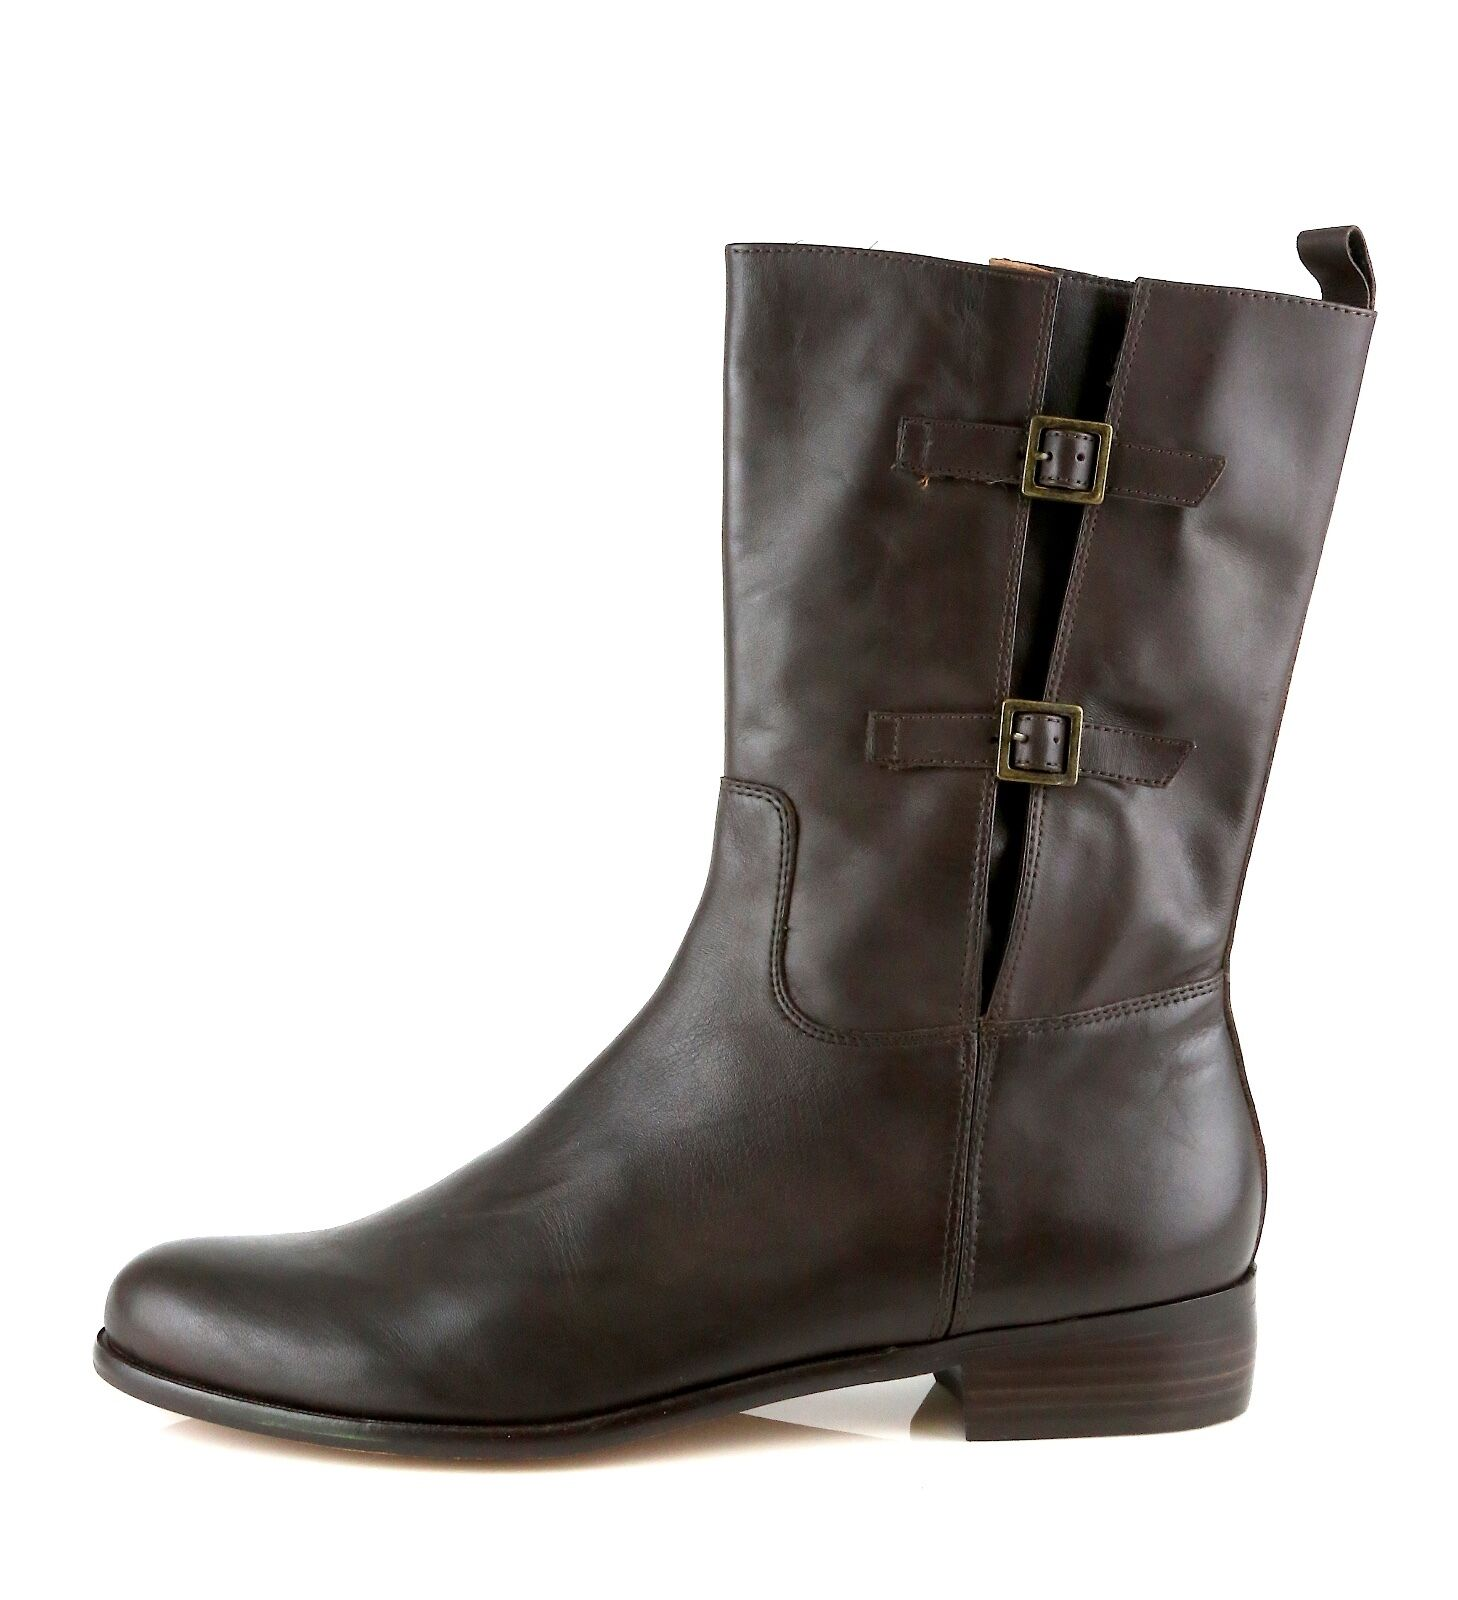 Corso Como Shepparton Woman's Coffee Brown Leather Boots 8451 Size 9.5 M NEW!